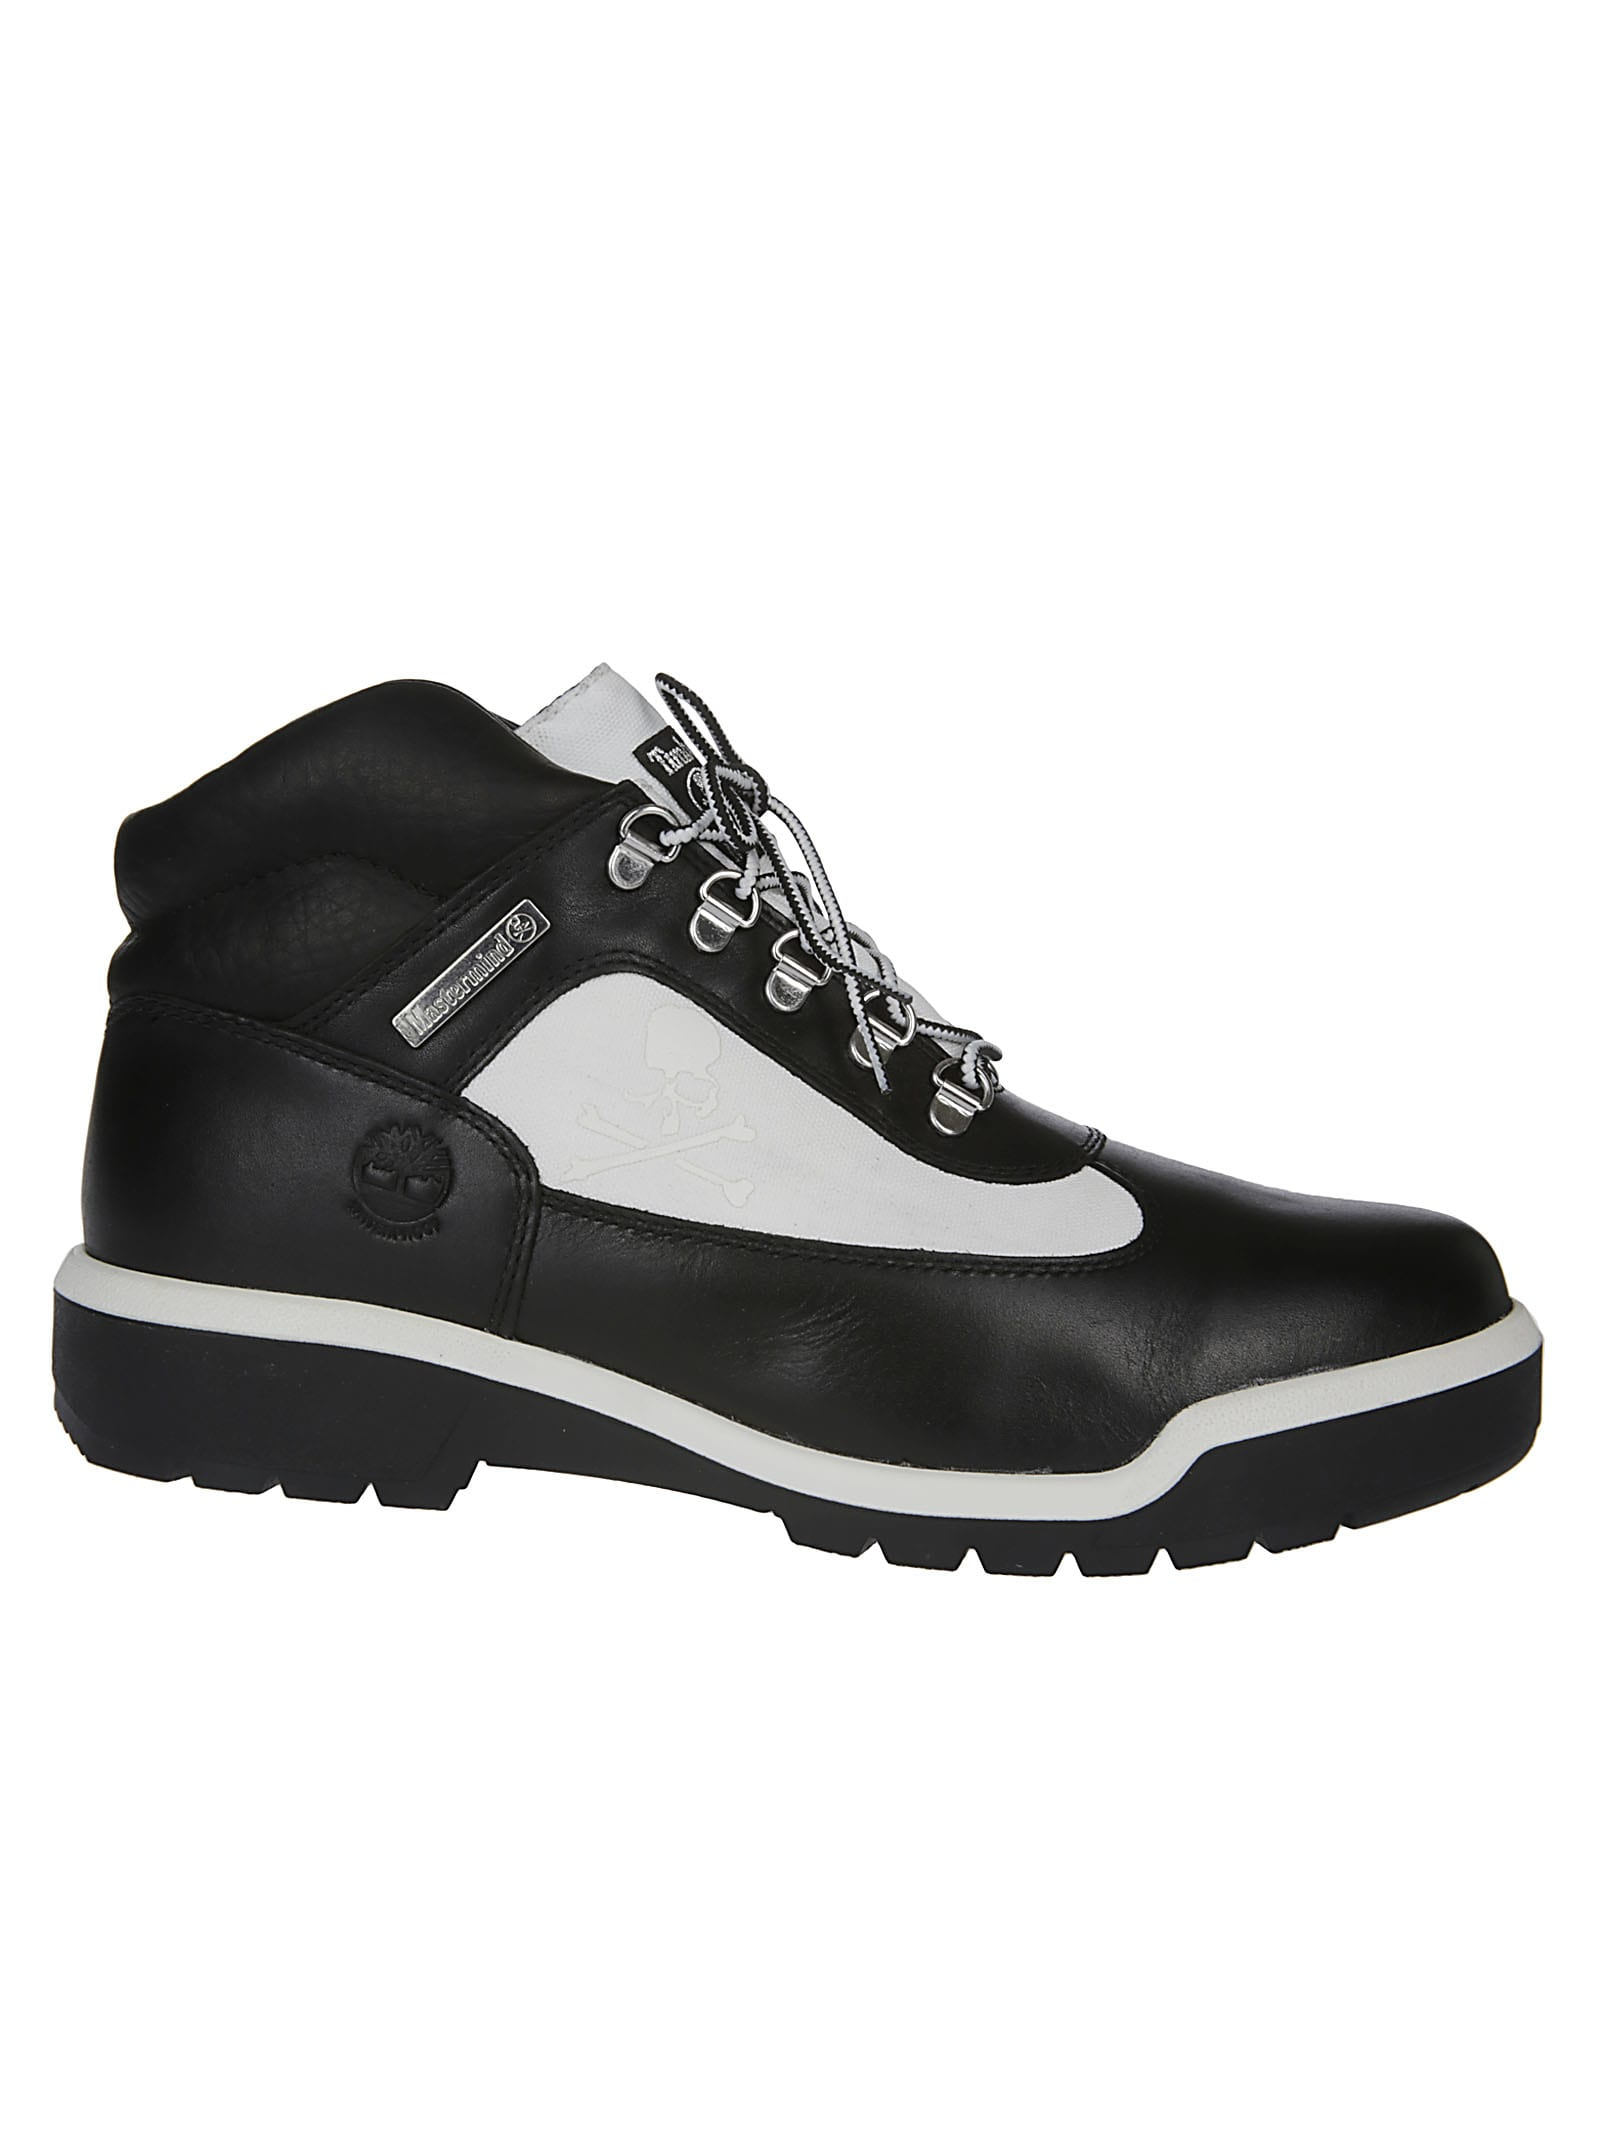 MASTERMIND WORLD Lace-up Boots